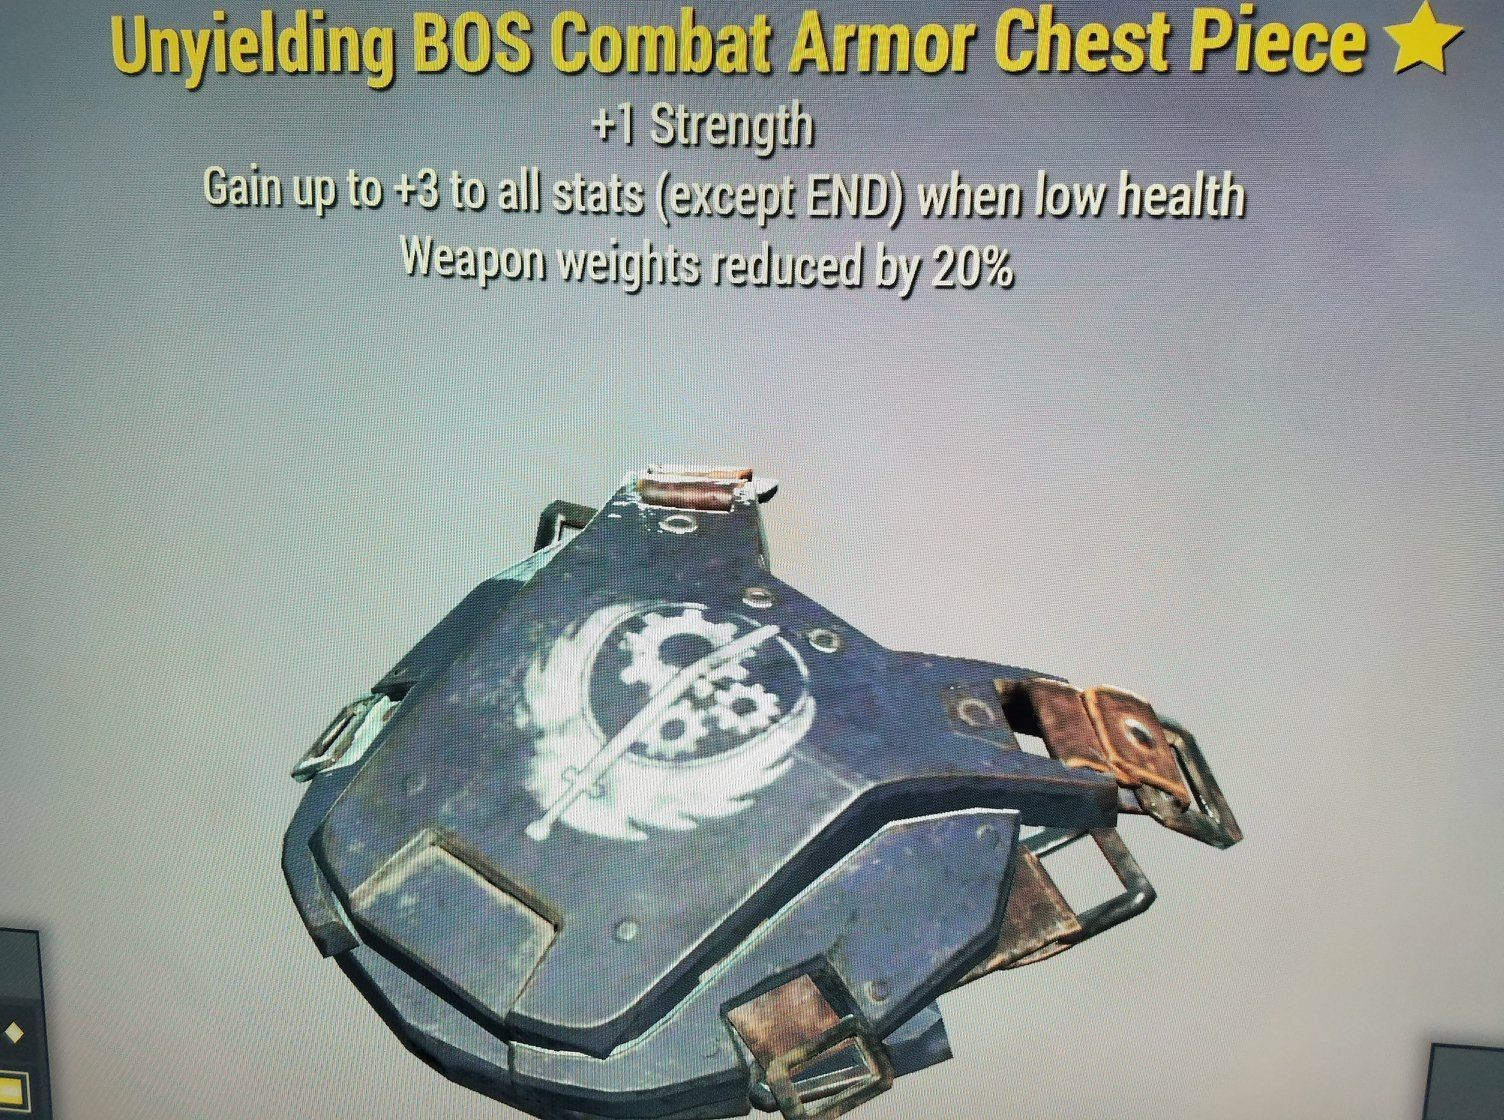 WW Reduction Unyielding BOS Combat Armor Chest Pie